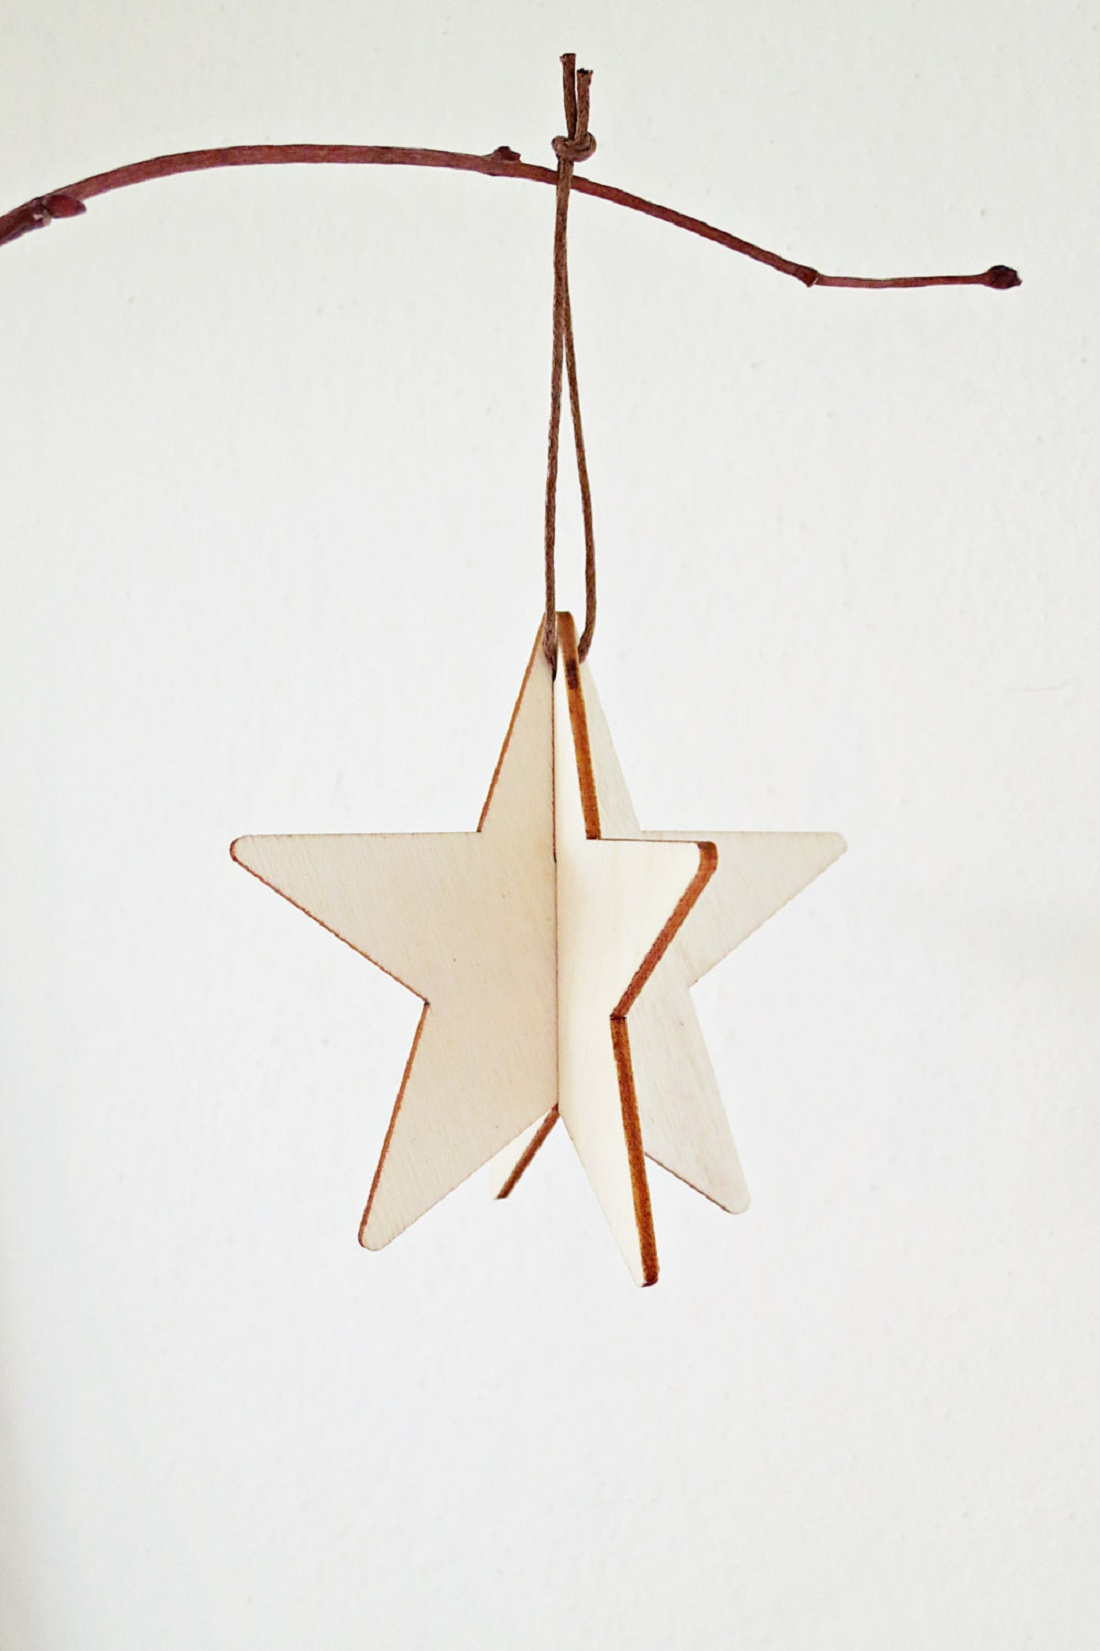 Holidays Decor - Ahoj 2012 feat on One O_0015